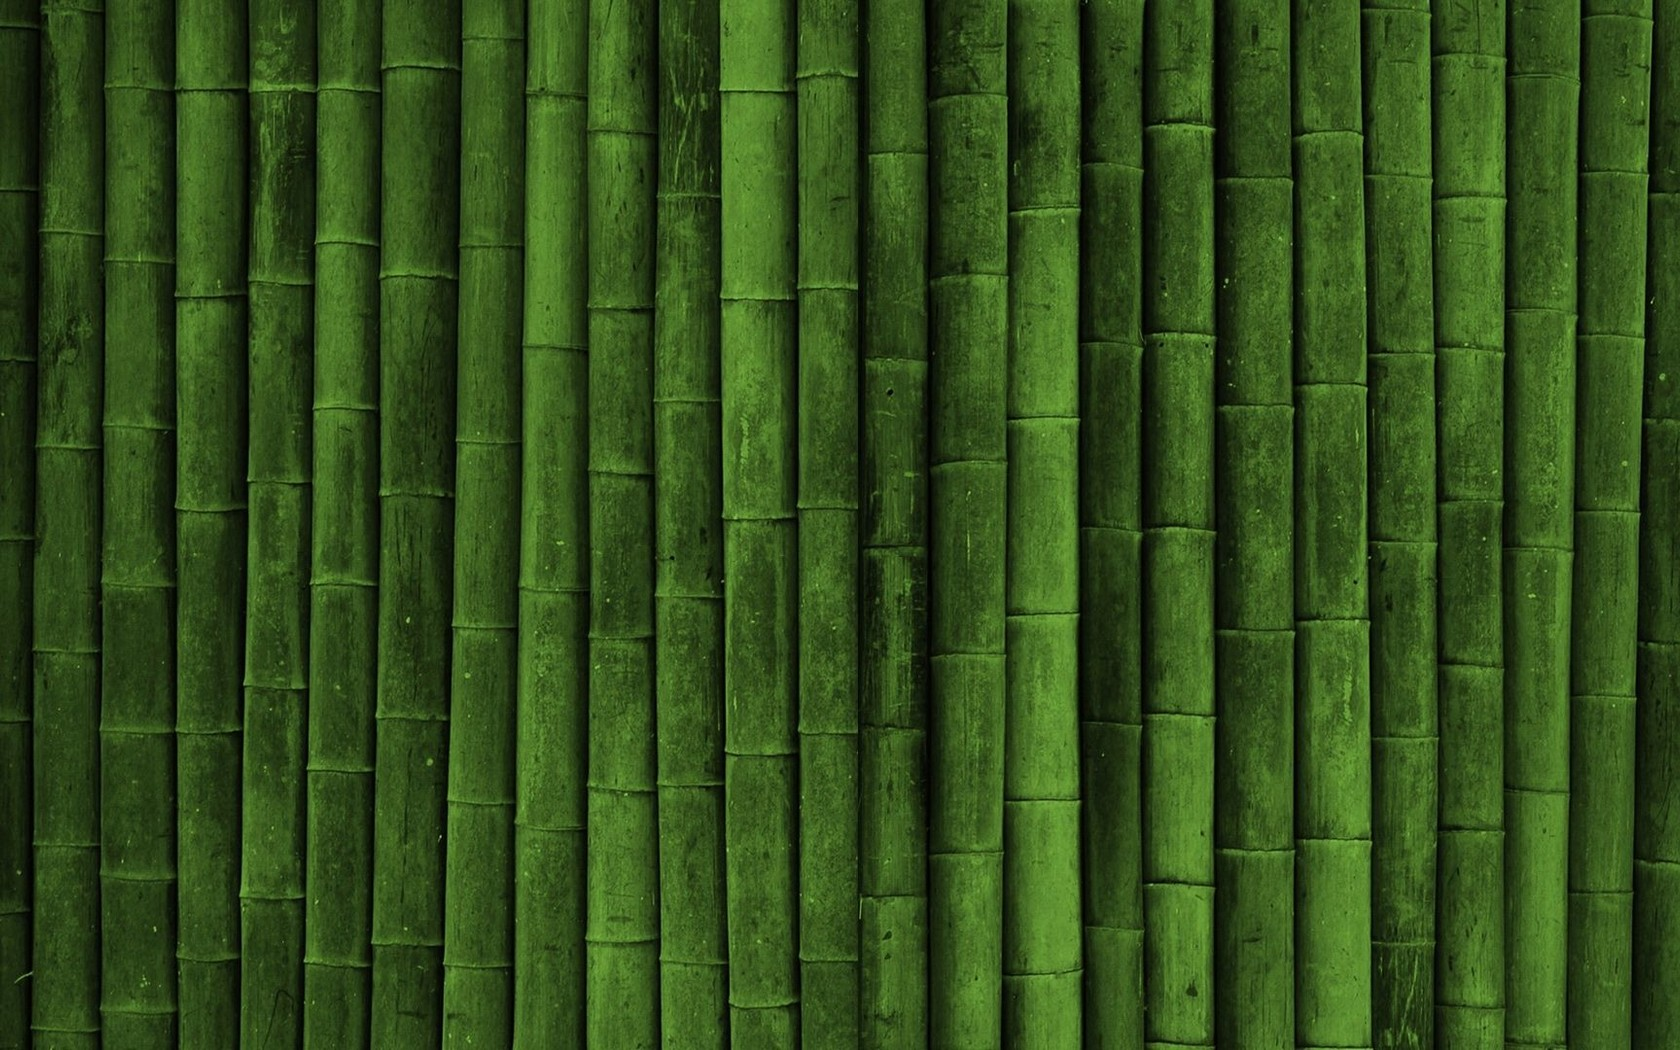 Bamboo Background Powerpoint Backgrounds For Free Powerpoint Templates